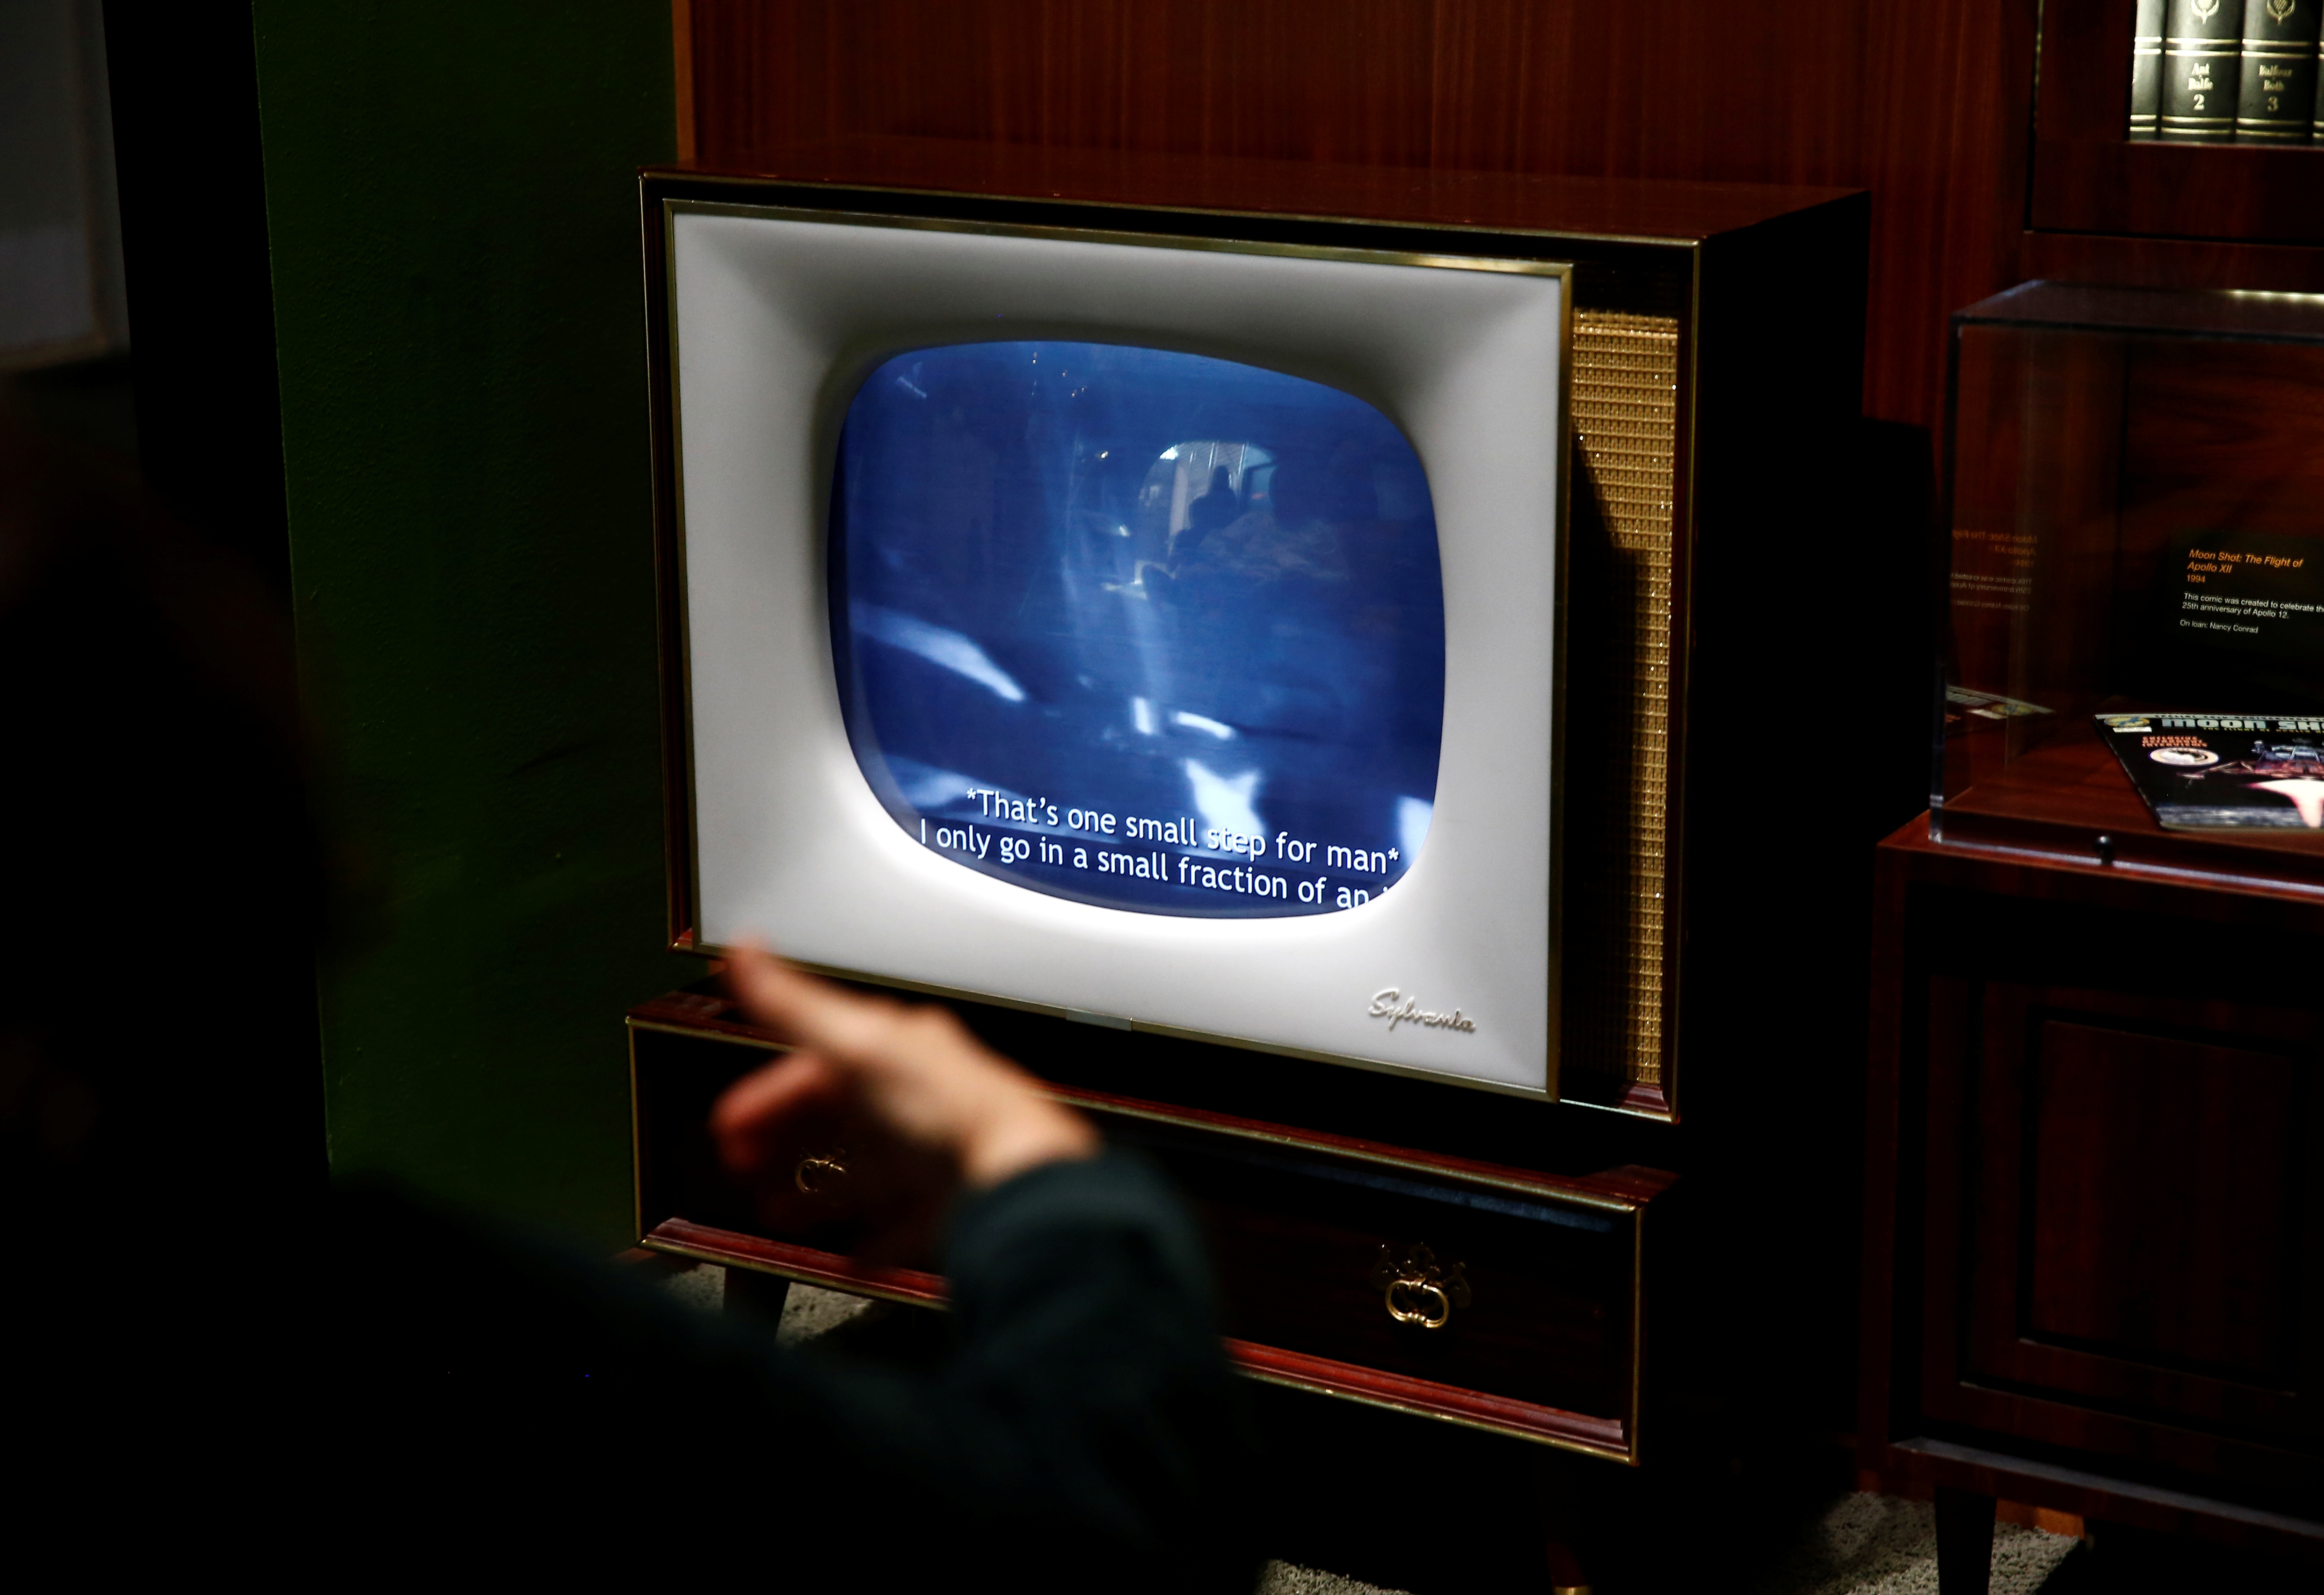 """A visitor watches footage from the moon landing in a recreated 1960s-style living room on the anniversary of the Apollo 11 mission launch at the """"Destination Moon: The Apollo 11 Mission"""" exhibit at the Museum of Flight in Seattle, Washington, U.S., July 16, 2019.   REUTERS/Lindsey Wasson"""